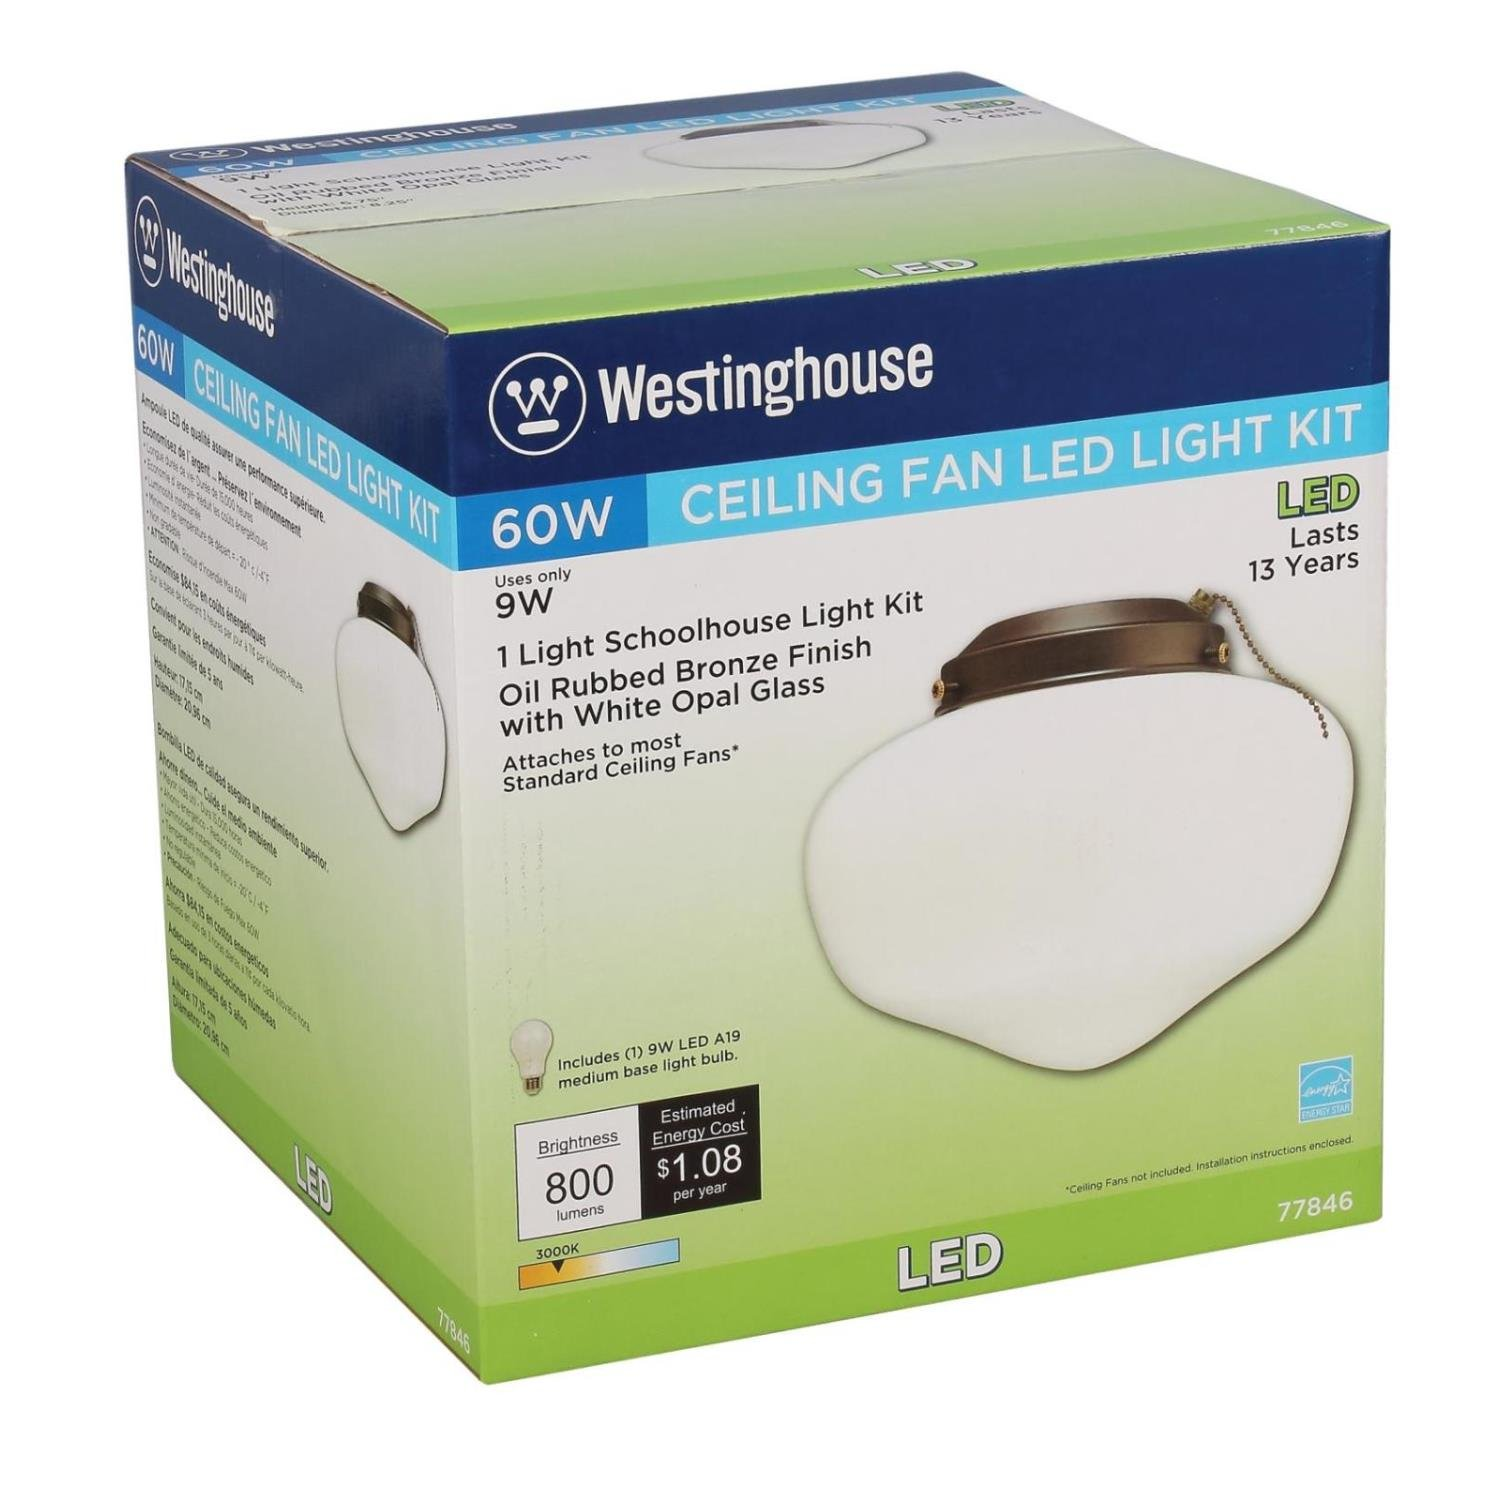 Westinghouse Lighting 7784600 LED Schoolhouse Indoor/Outdoor Energy Star Ceiling Fan Light Kit, Oil Rubbed Bronze Finish with White Opal Glass by Westinghouse Lighting (Image #3)